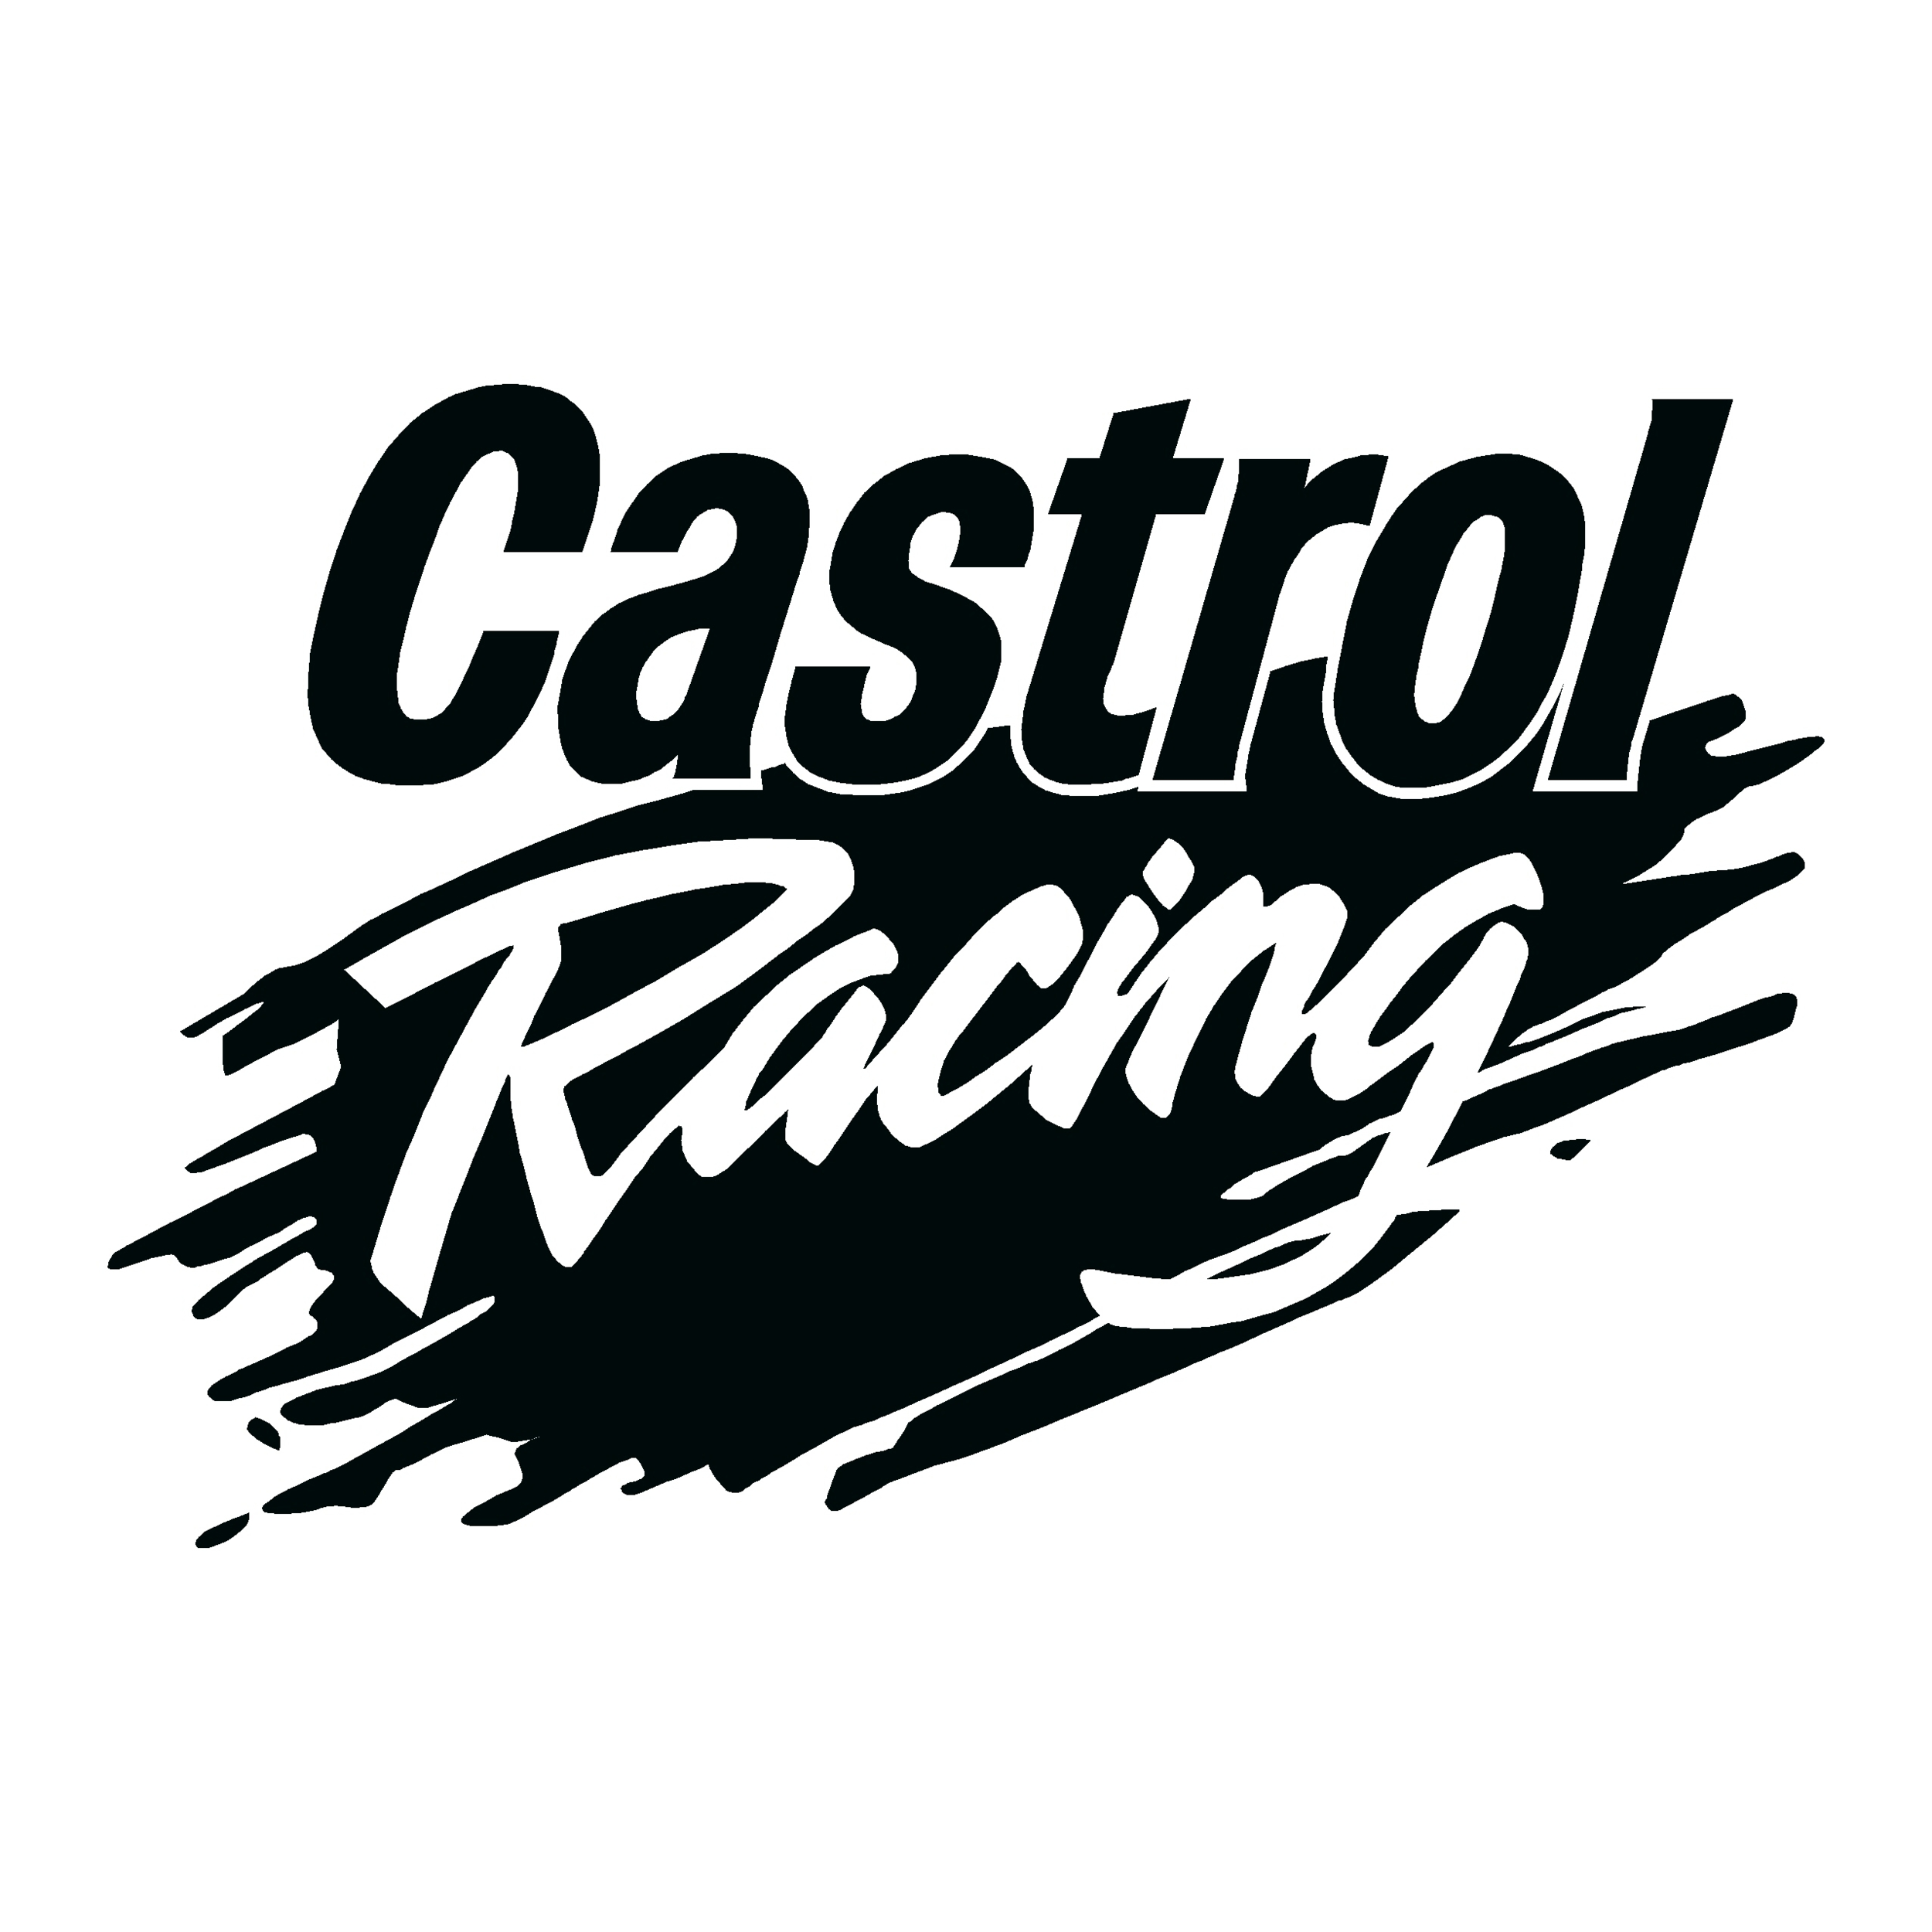 Sticker castrol racing ref 1 sponsors off road stickers